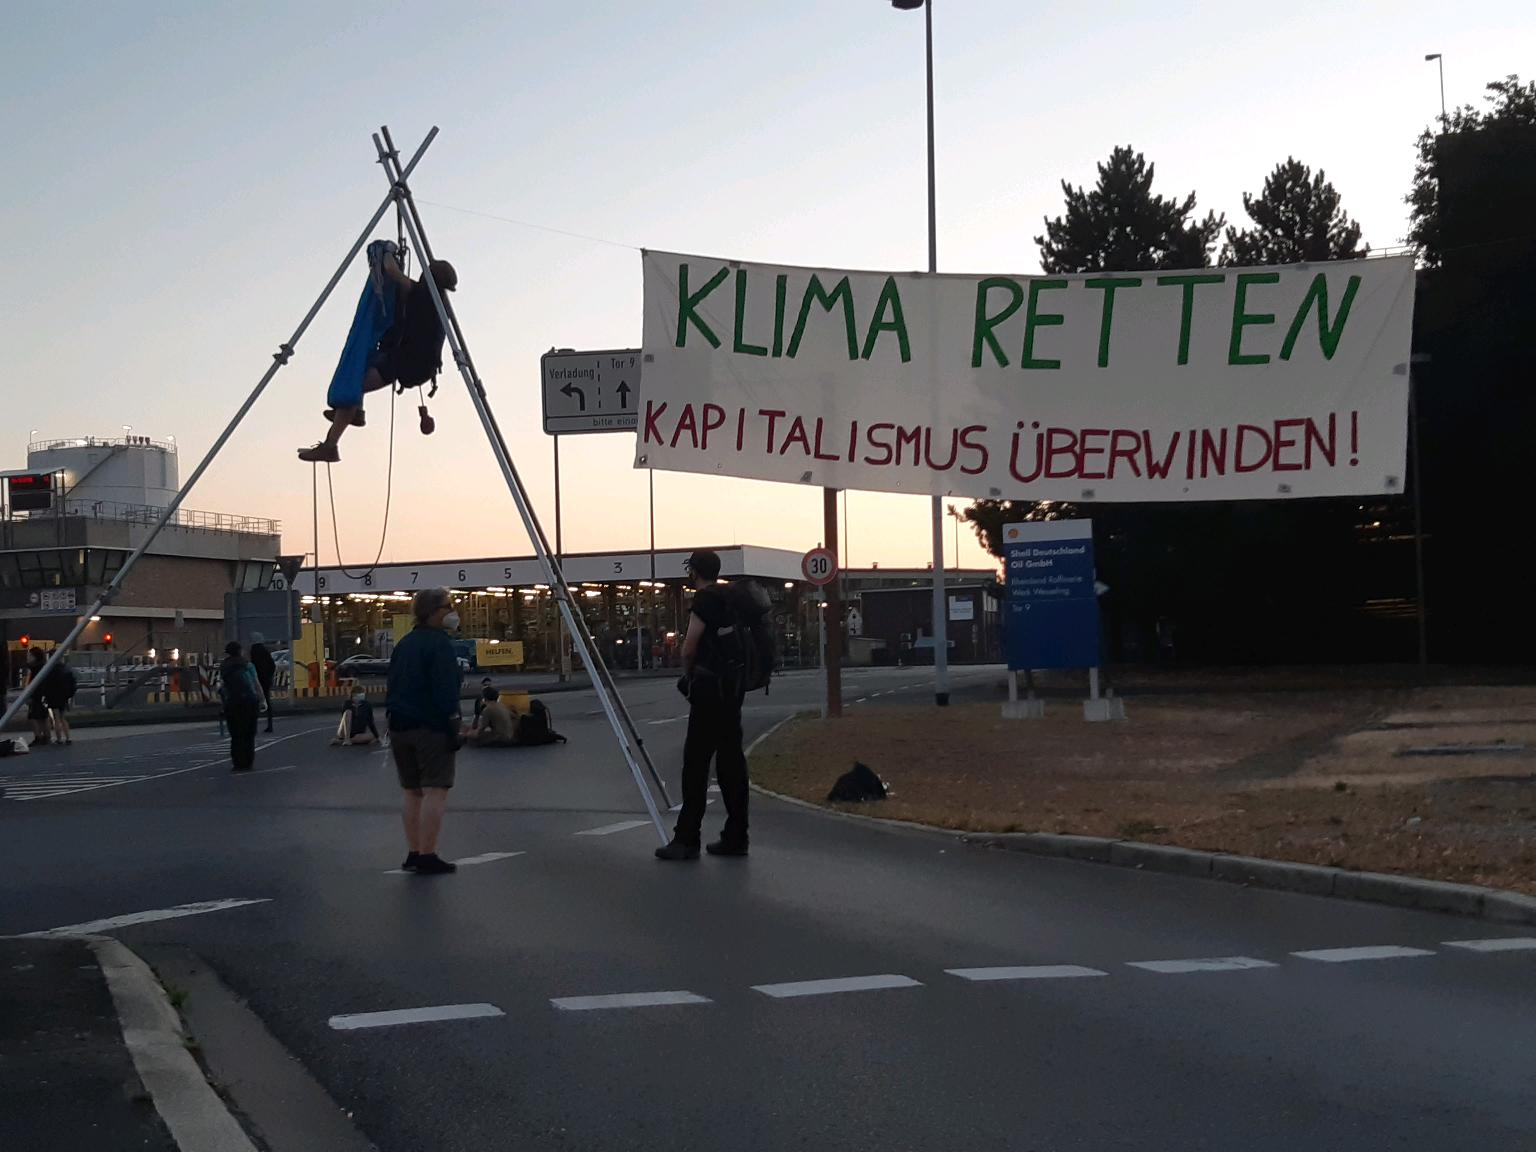 """Activists with """"SAVE THE CLIMATE OVERCOME CAPITALISM"""" banner at Gate 9 of the Shell refinery in Wesseling, Germany."""